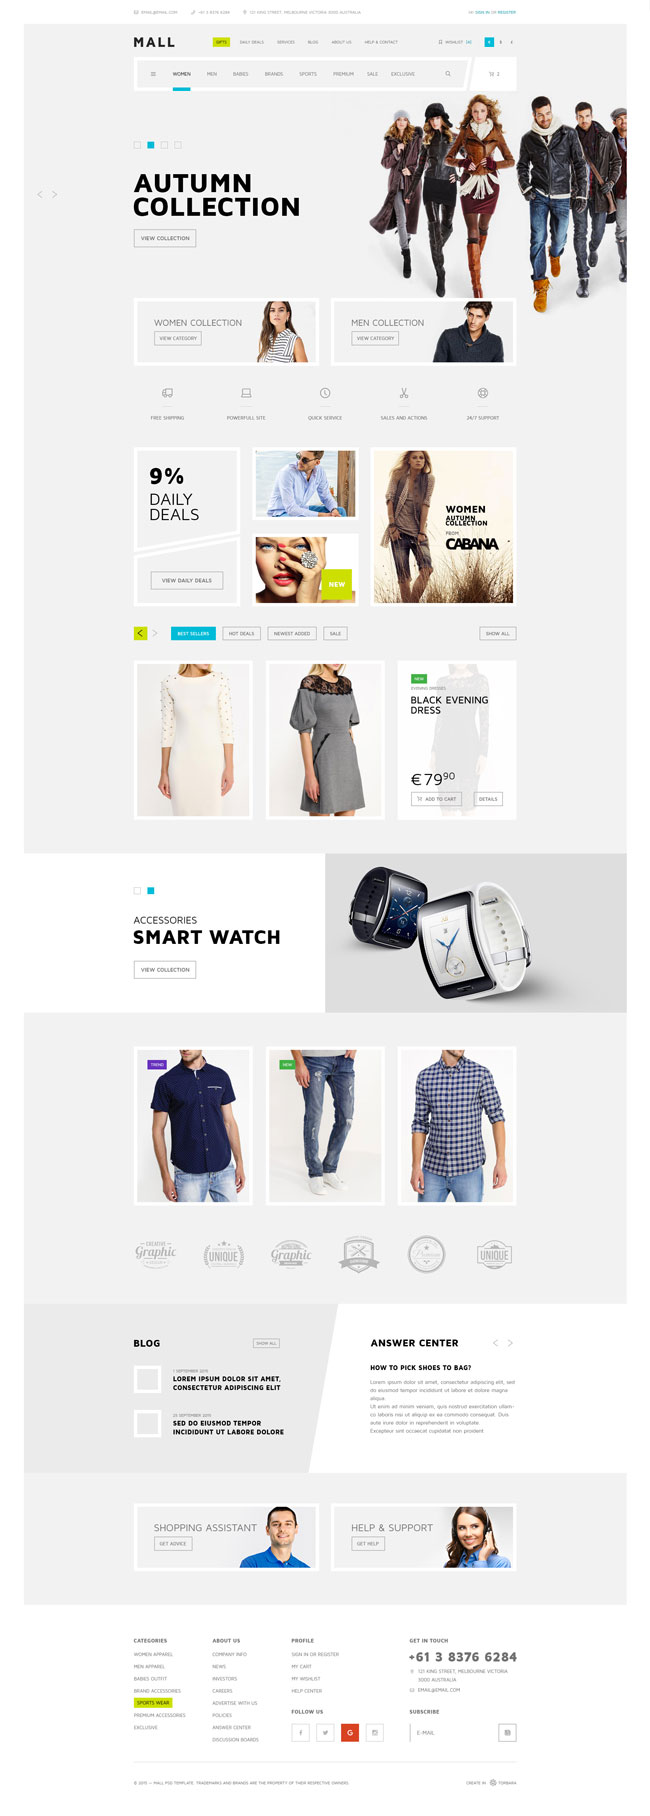 Mall-Multi-Purpose-eCommerce-PSD-Template